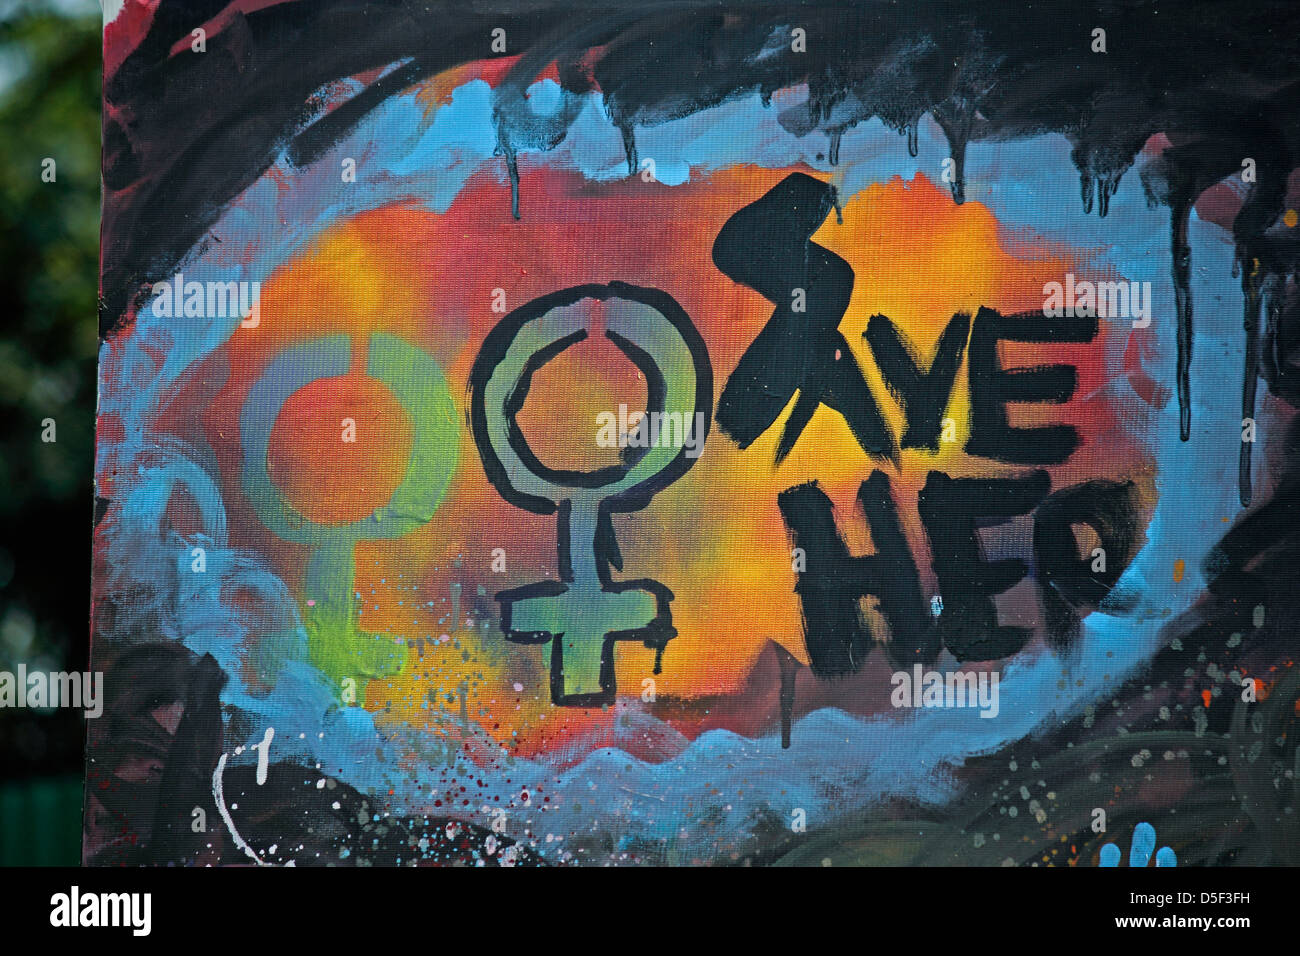 painting with concept save the girl child india stock photo rh alamy com save girl poster painting save girl child paintings